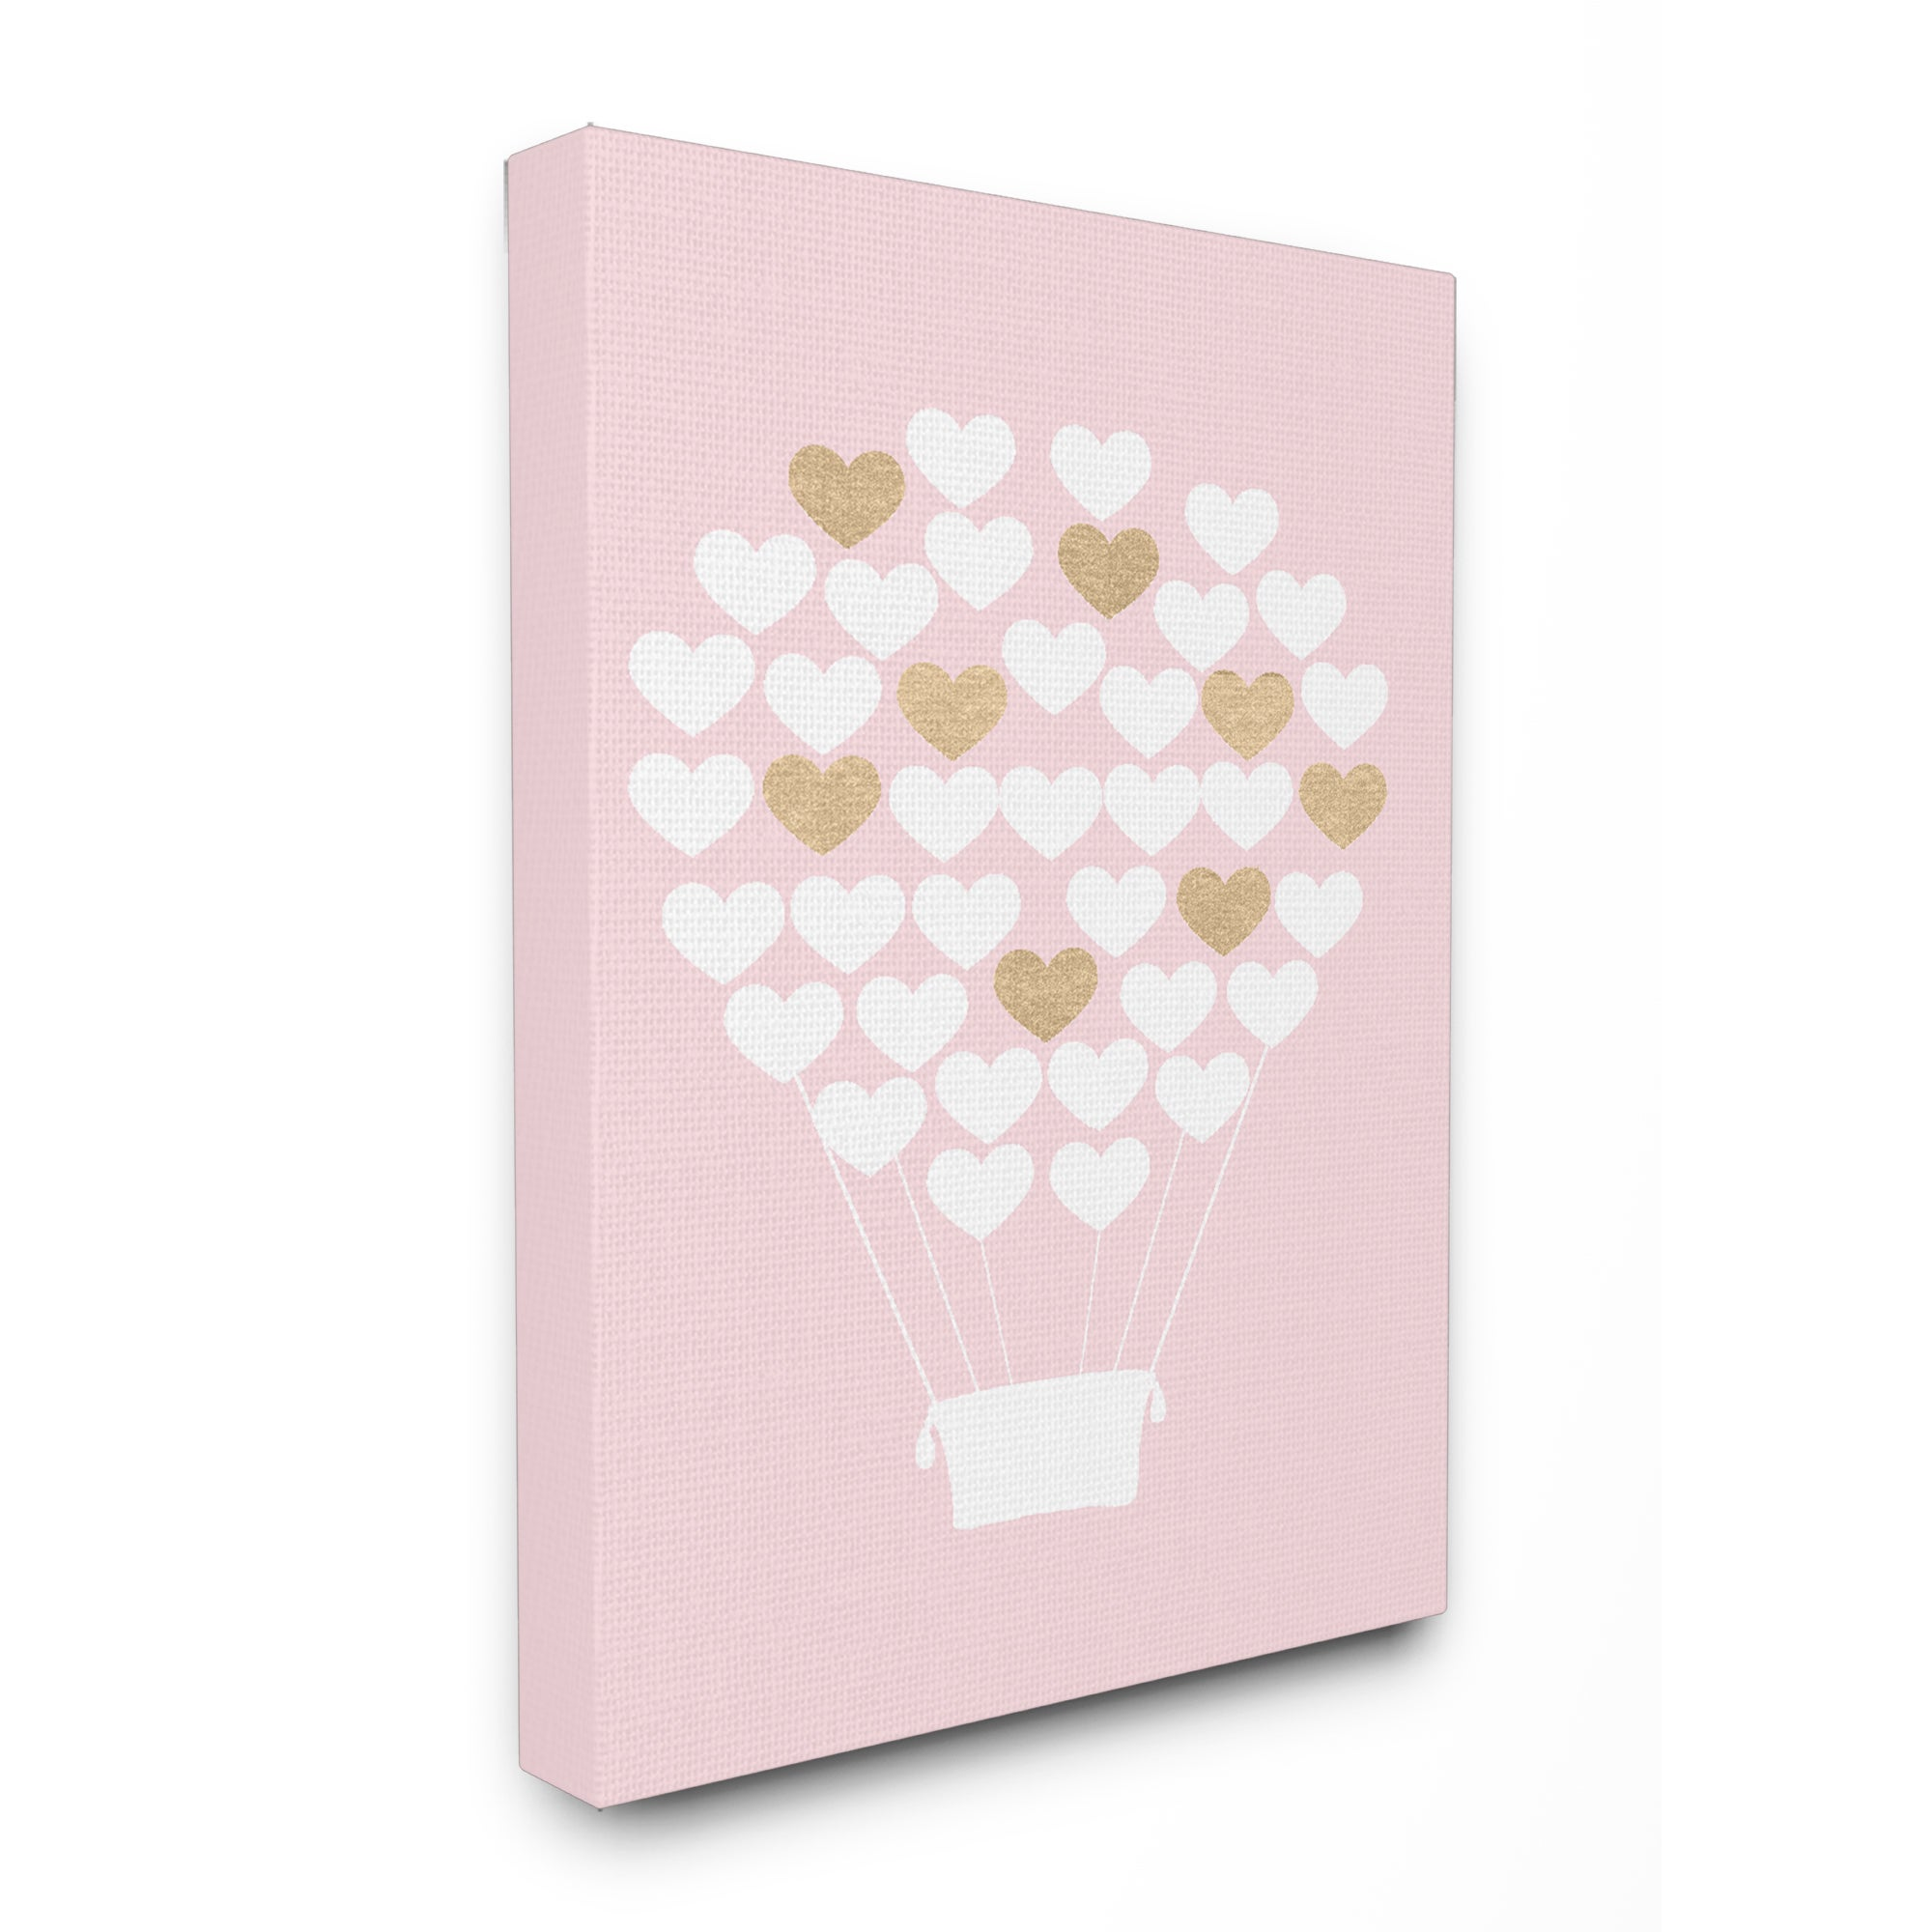 White gold pink heart hot air balloon stretched canvas wall art